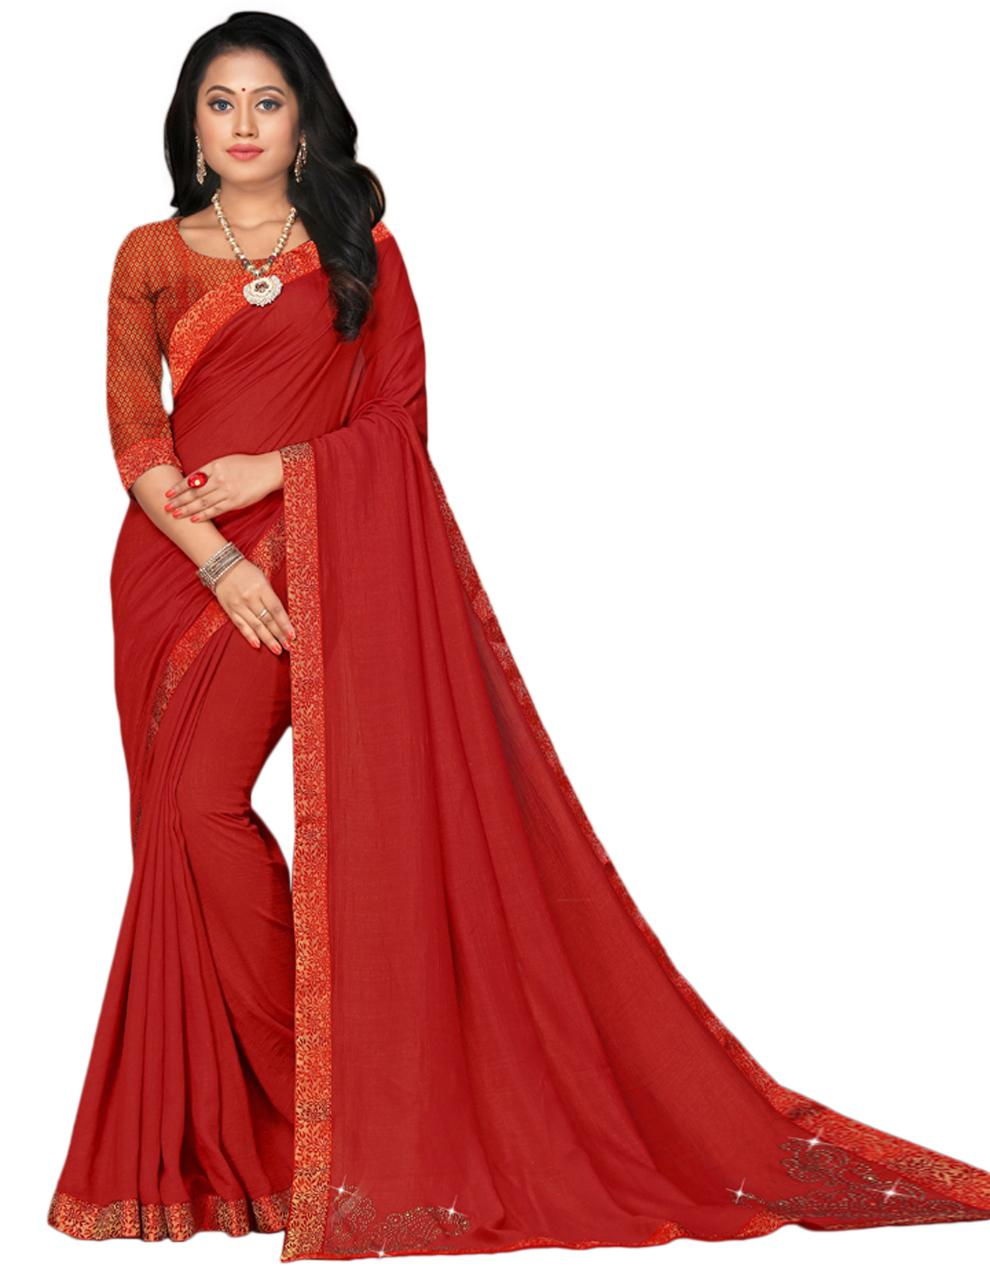 Red Vichitra silk Saree With Blouse IW24326